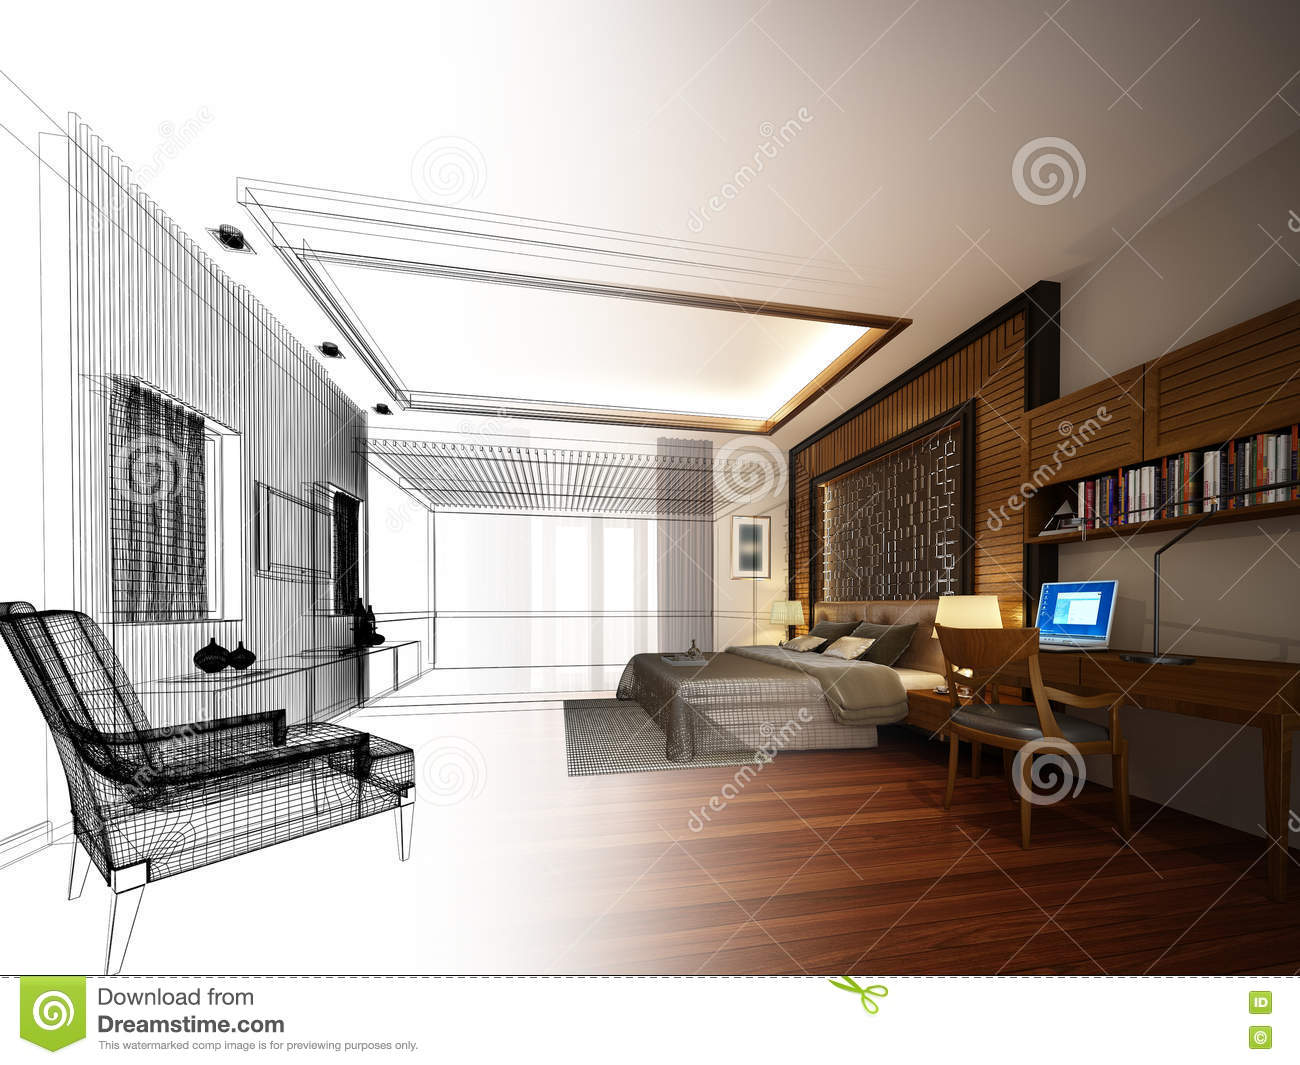 Abstract Sketch Design Of Interior Bedroom Stock Illustration ... on house studio design, house art design, house painting design, house model design, house design blueprint, house autocad, sketchup house design, house template, product page design, house plans with furniture layouts, house green design, house layout design, house graphic design, green building design, house drawing, house study design, house construction, house perspective design, house light design, house architecture design,